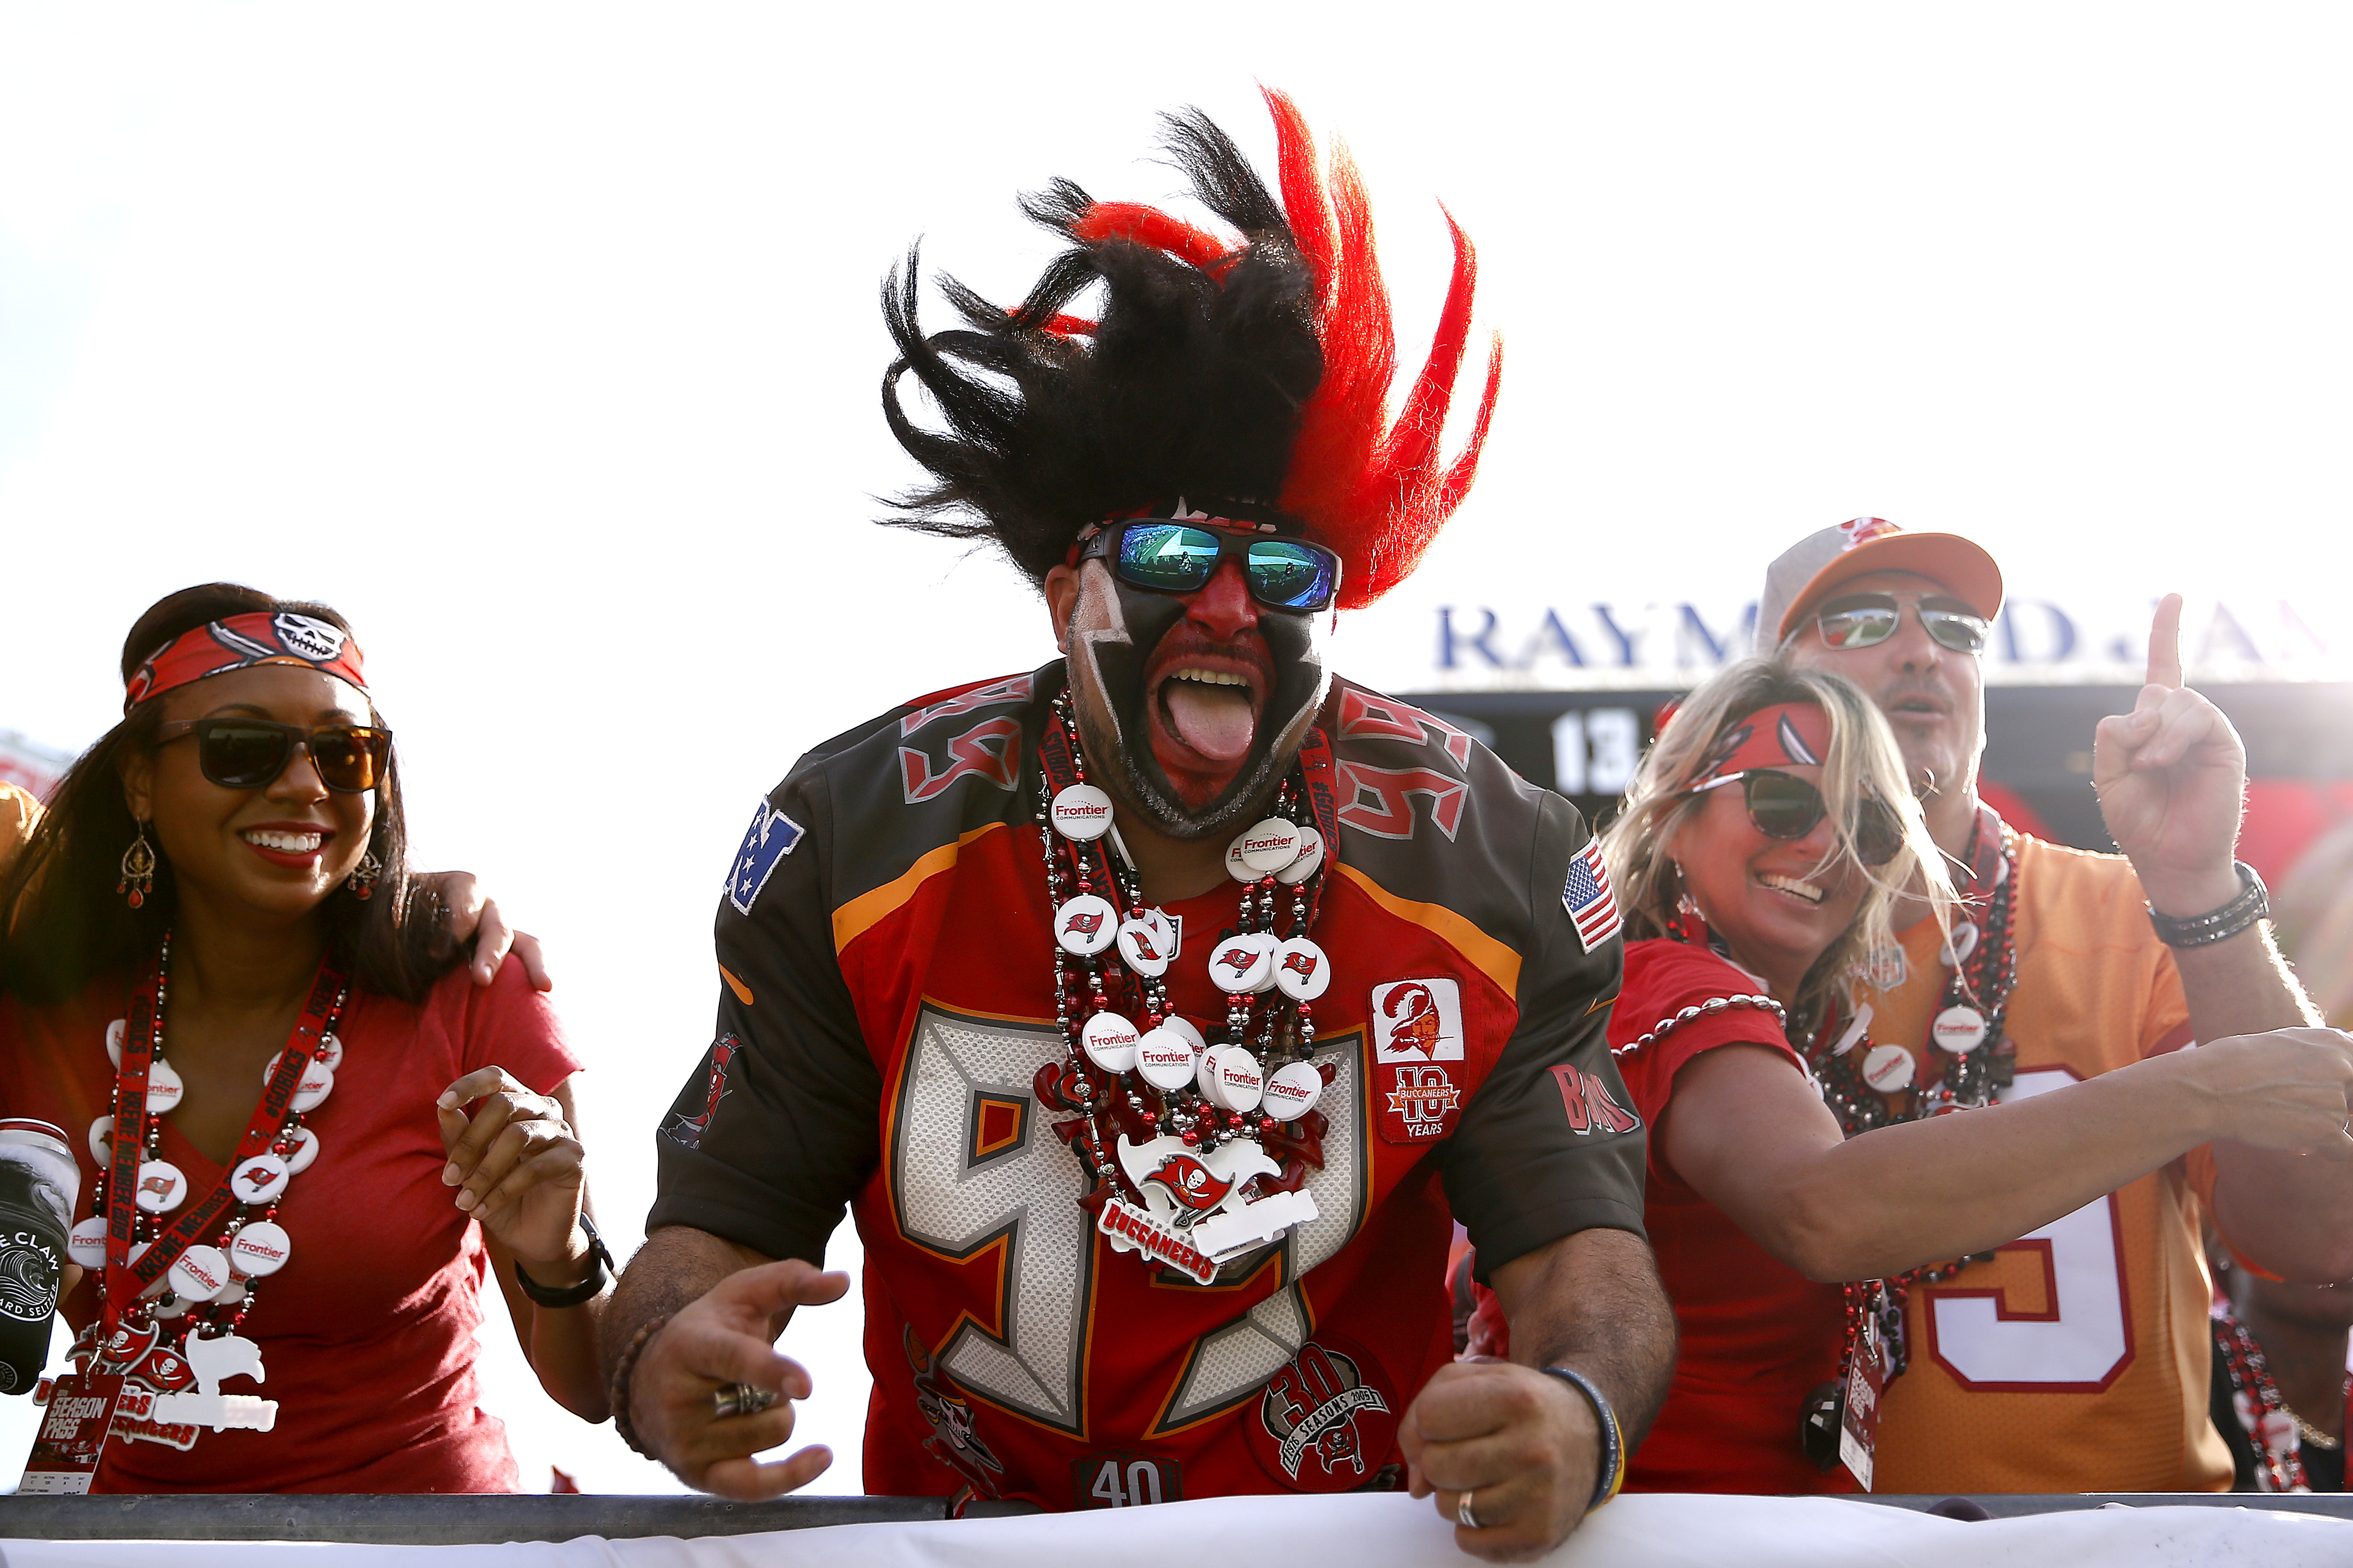 Bucs Fans Are Posting the Sweetest Videos Celebrating Tampa Bay's Super Bowl Appearance